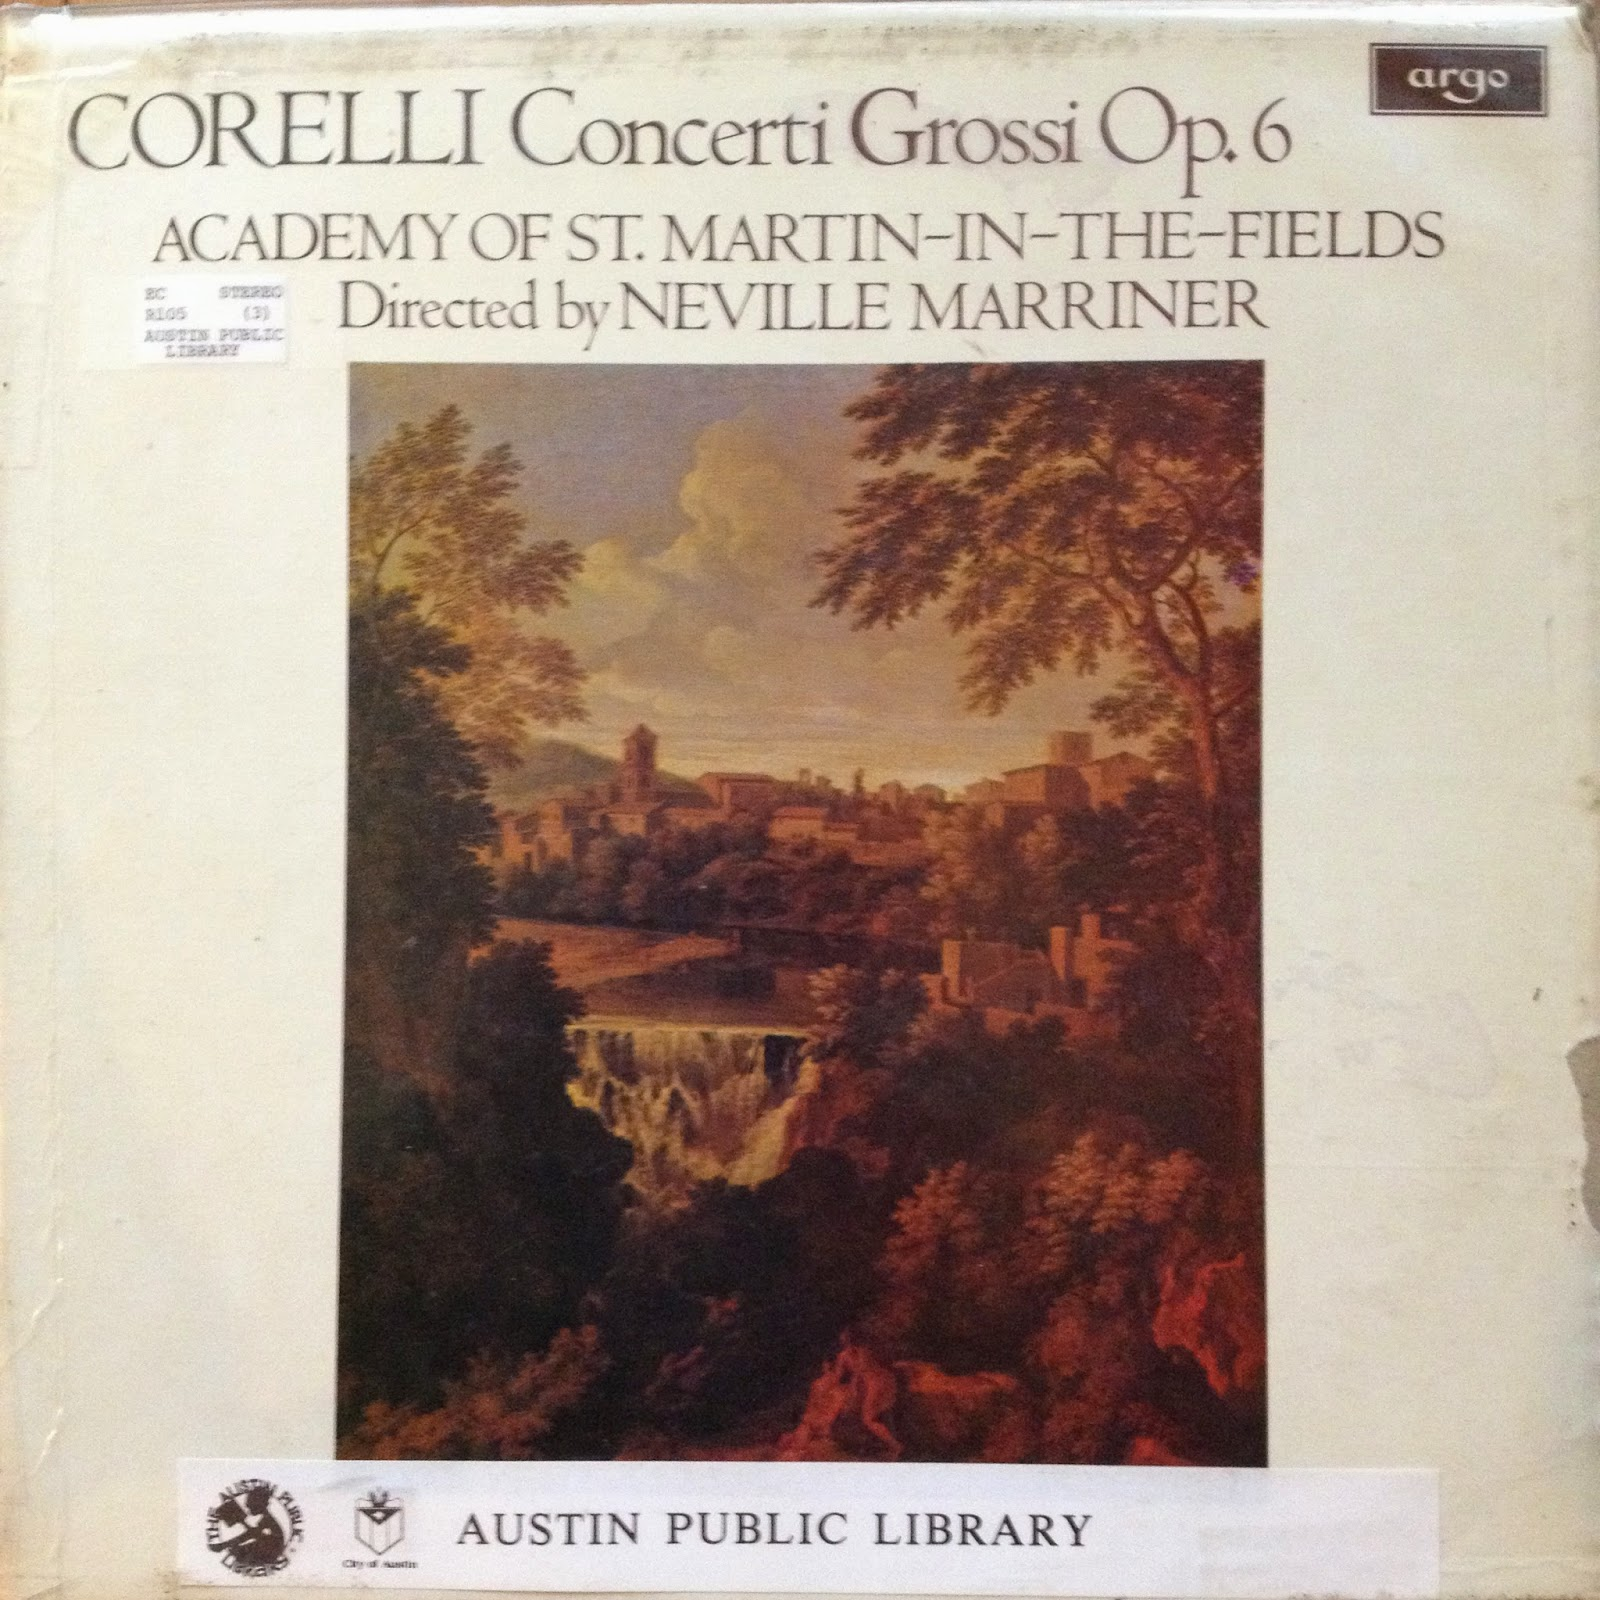 LP of Corelli, Concerti Grossi Op. 6